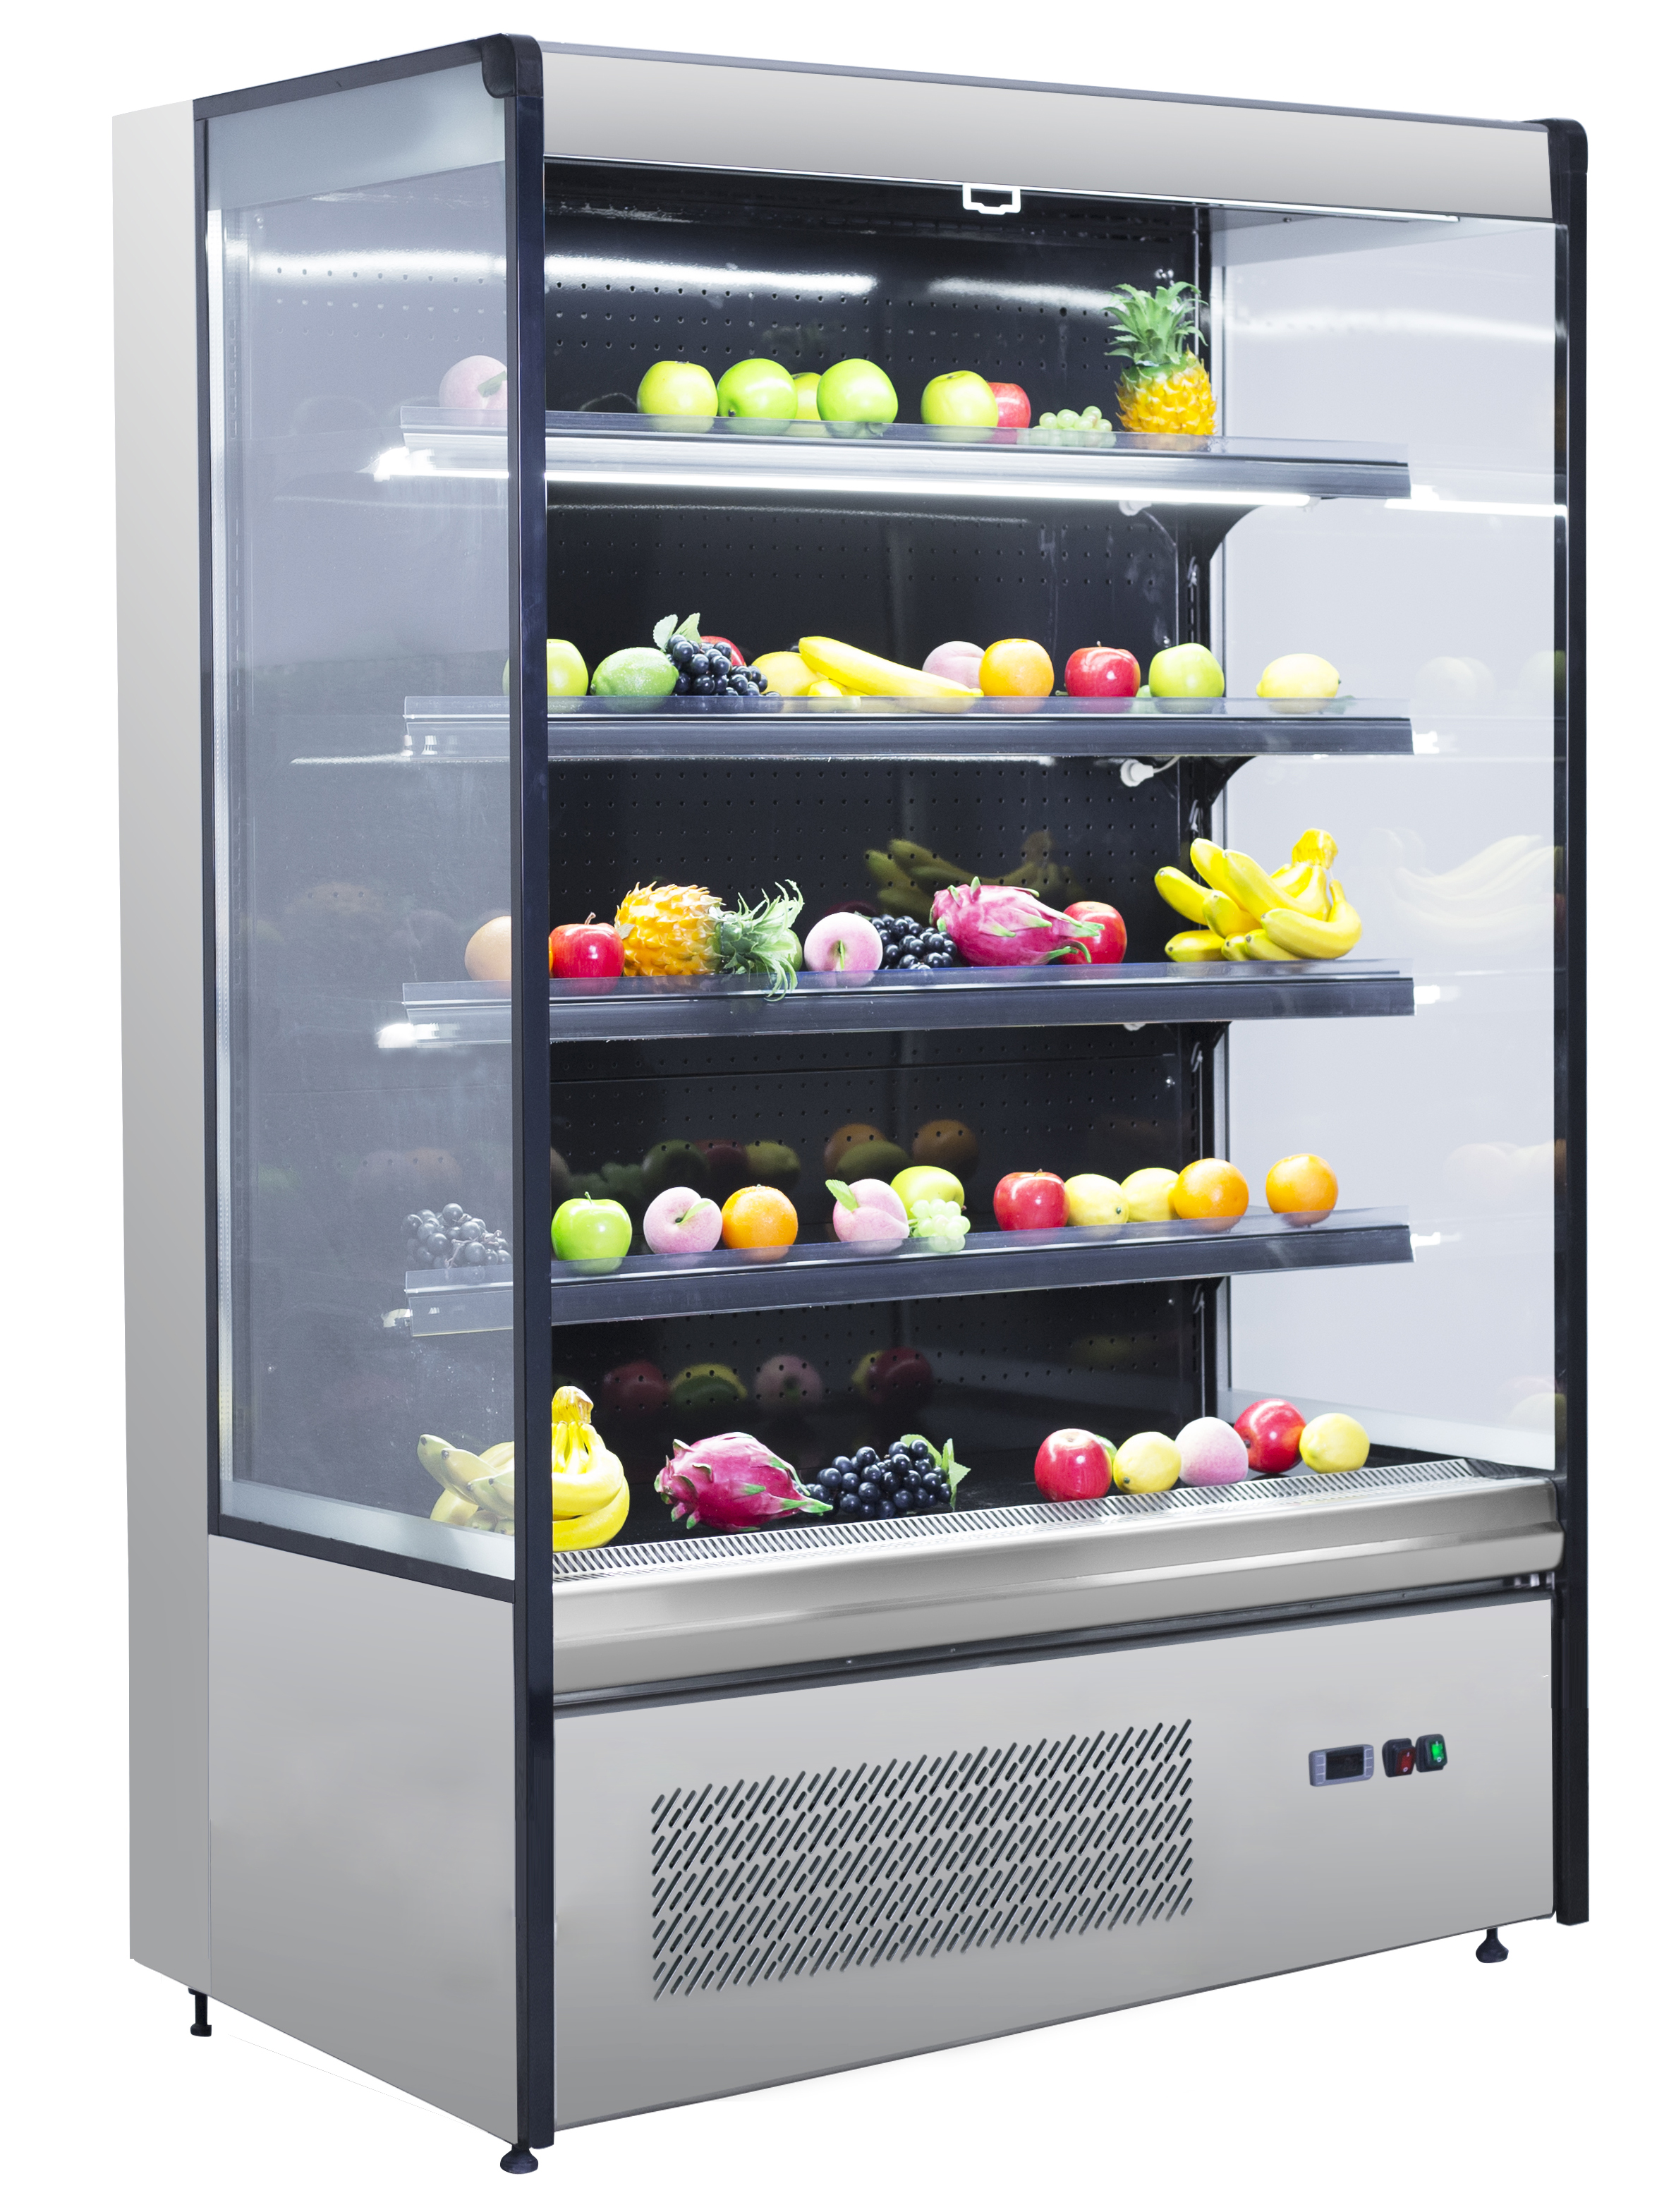 Walk In Freezer For Sale >> Toronto Refrigeration and Freezer Retailer of Hussmann ...